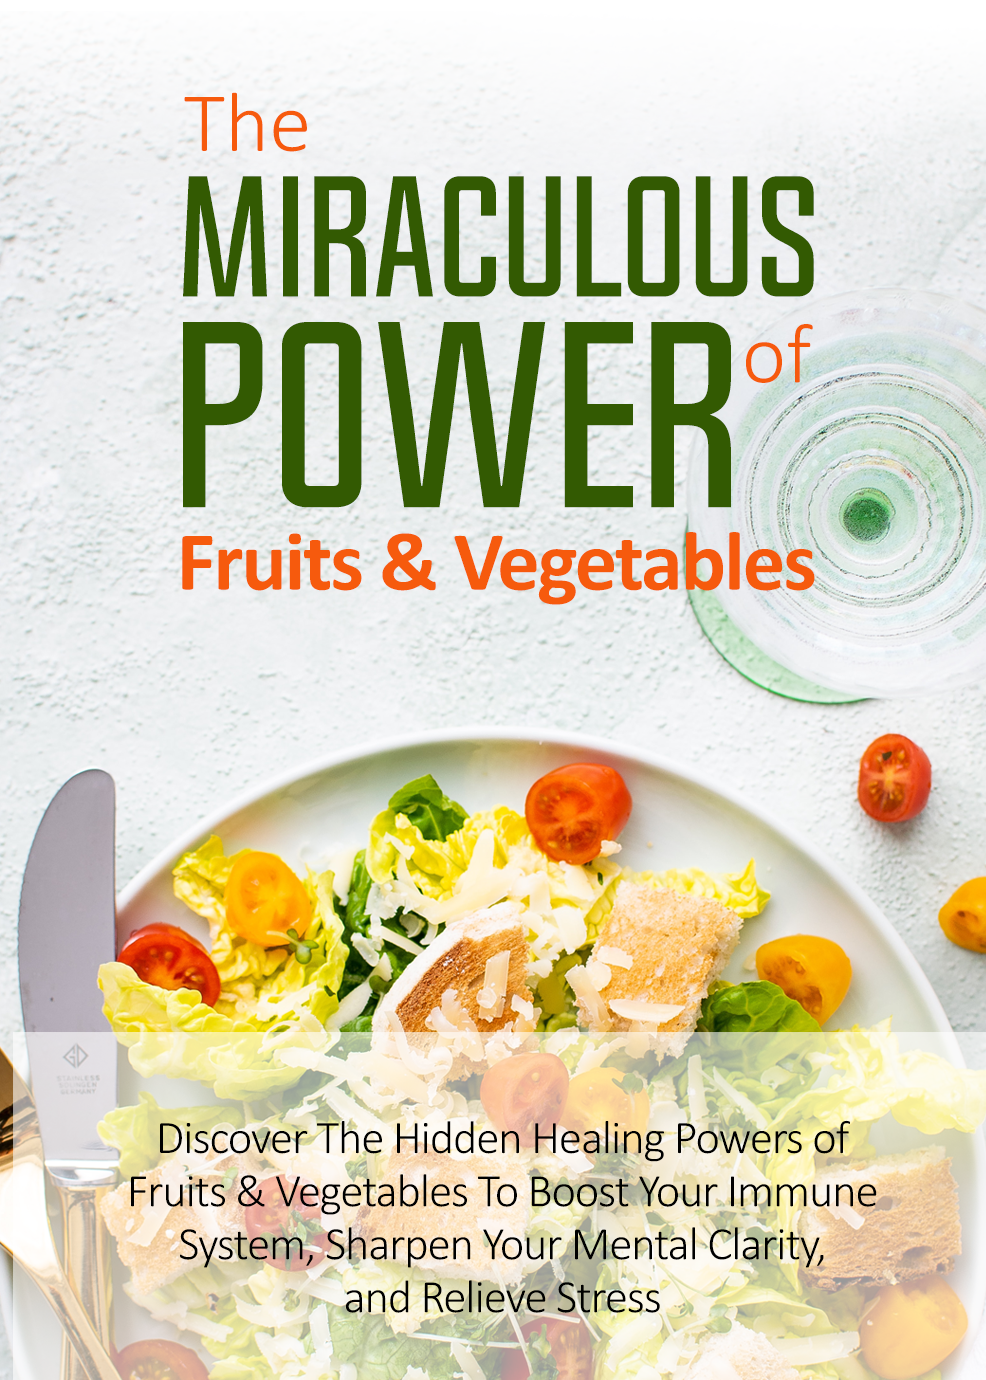 The Miraculous Power of Fruit & Vegetables (Discover The Hidden Healing Powers Of Fruits & Vegetables To Boost Your Immune System, Sharpen Your Mental Clarity And Relieve Stress) Ebook's Ebook Image